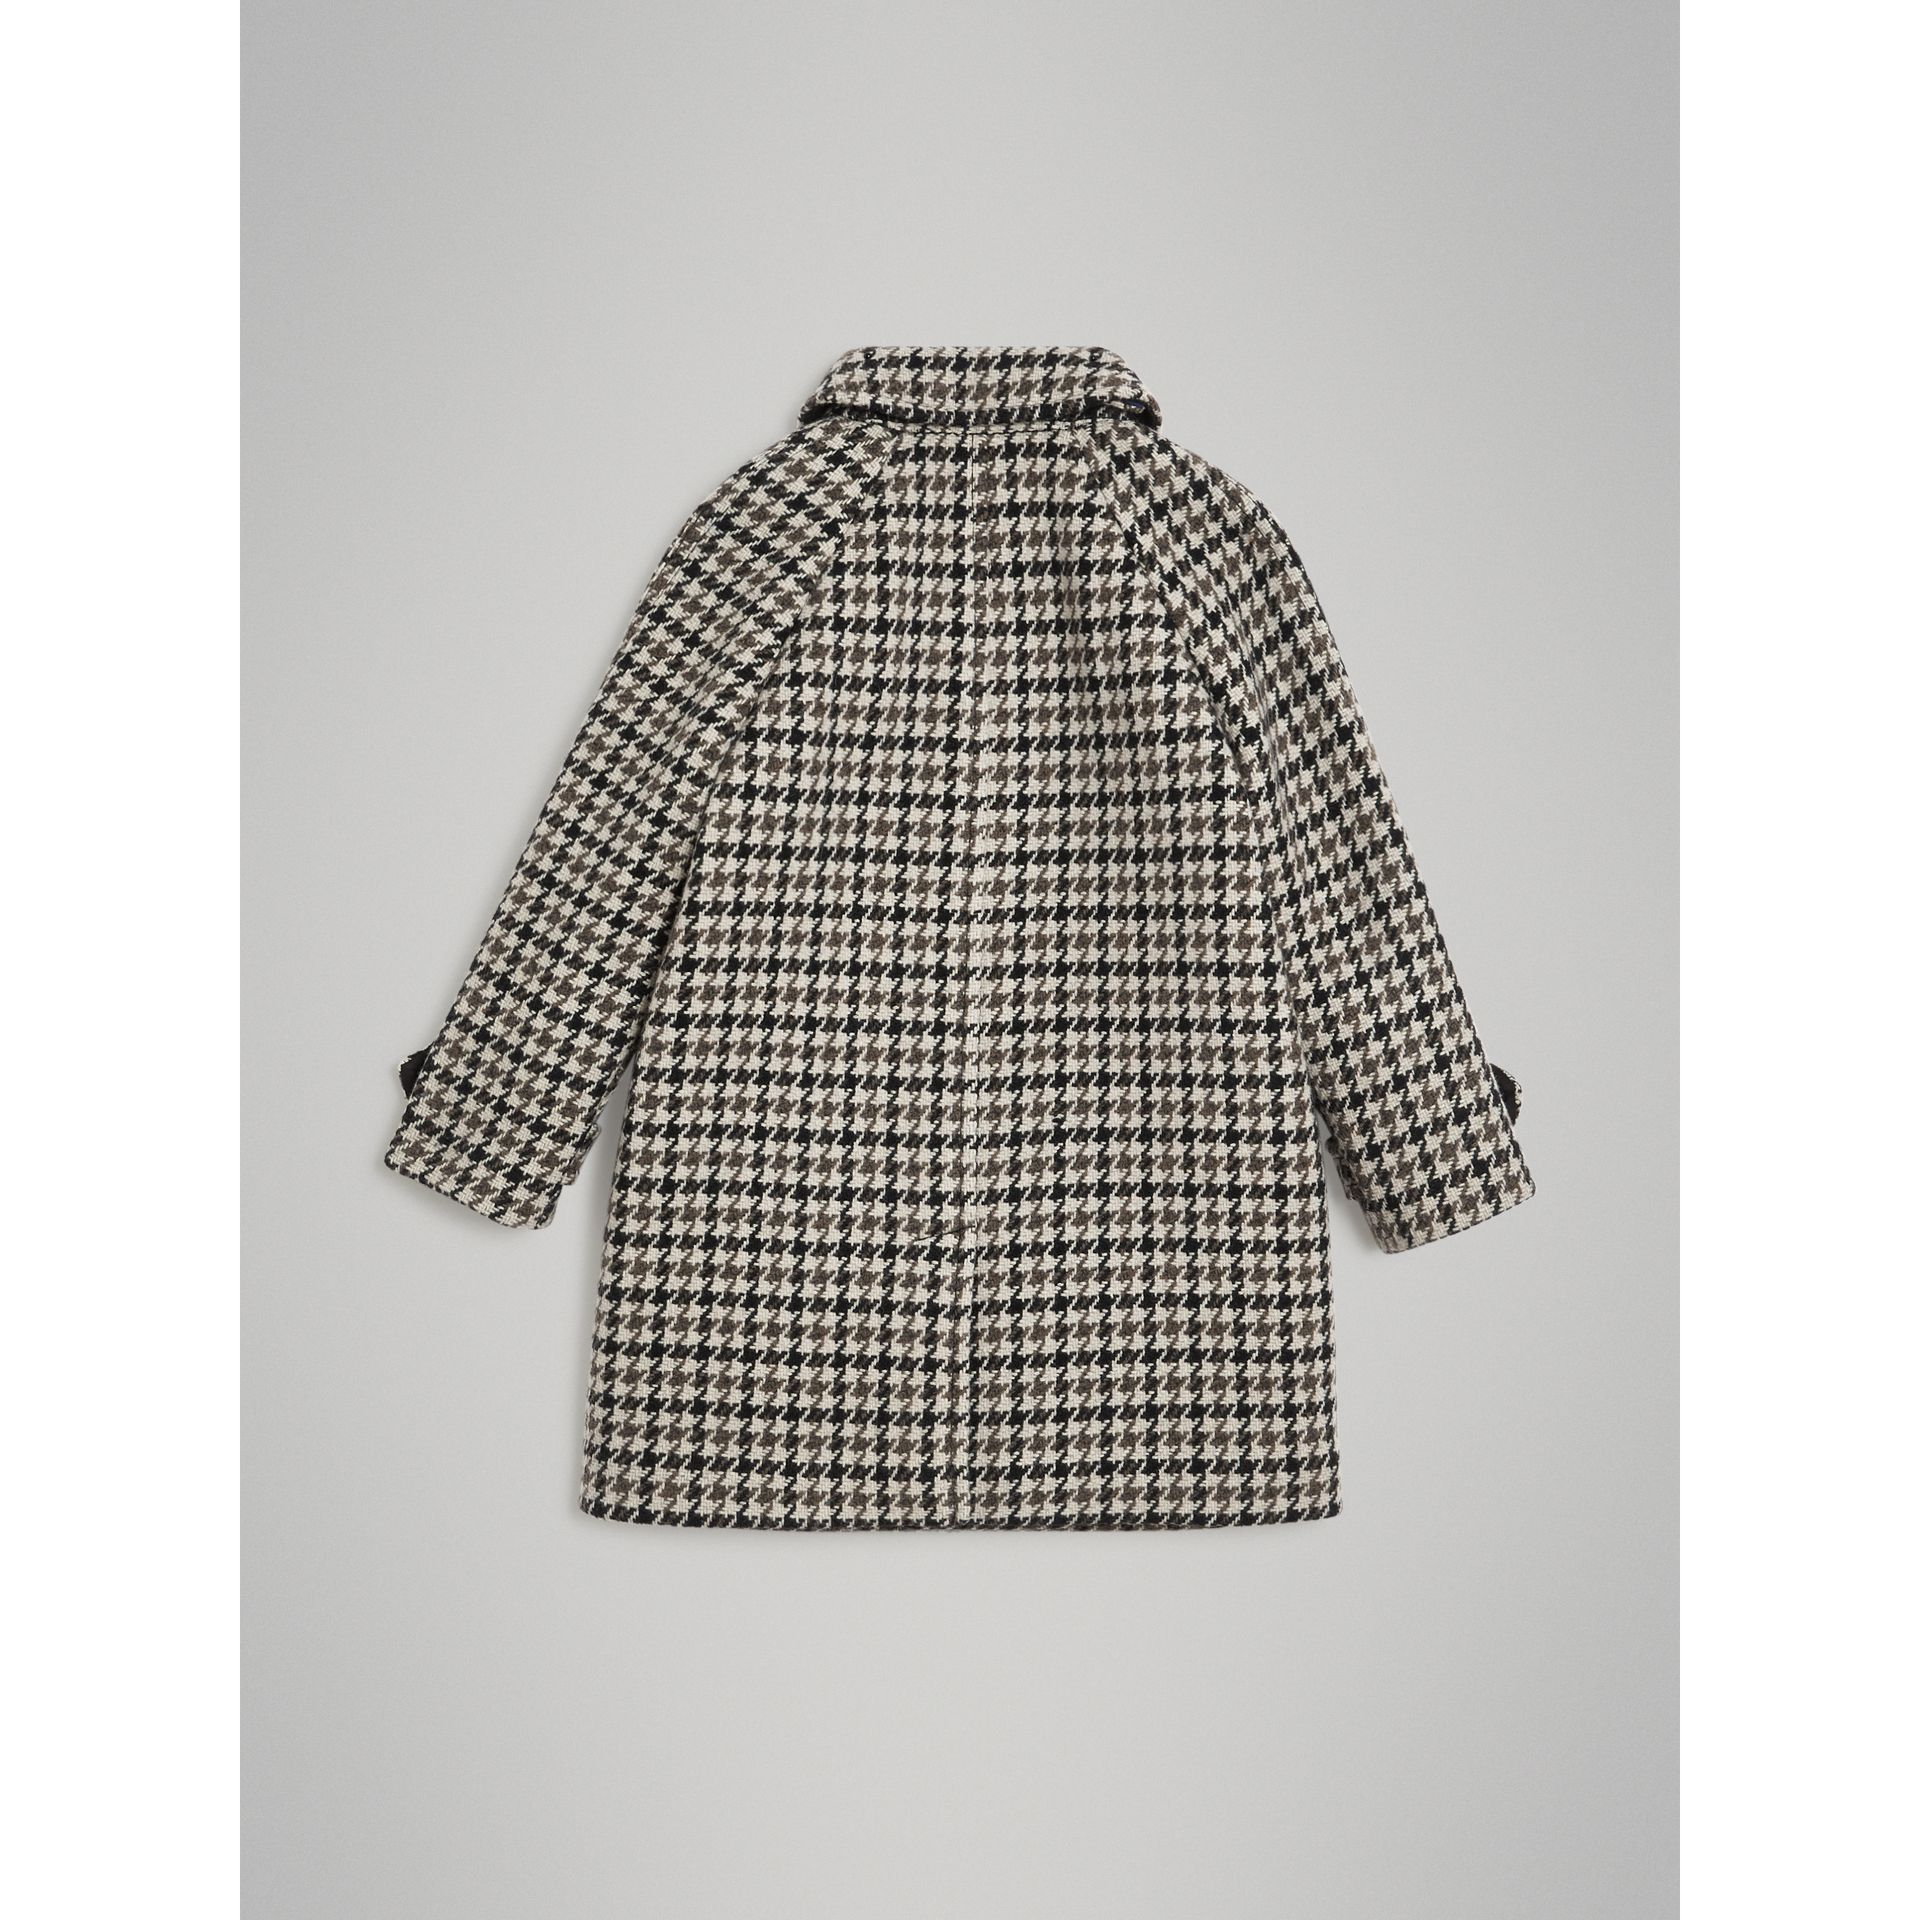 Houndstooth Check Wool Cashmere Blend Coat in Mid Grey | Burberry United Kingdom - gallery image 3